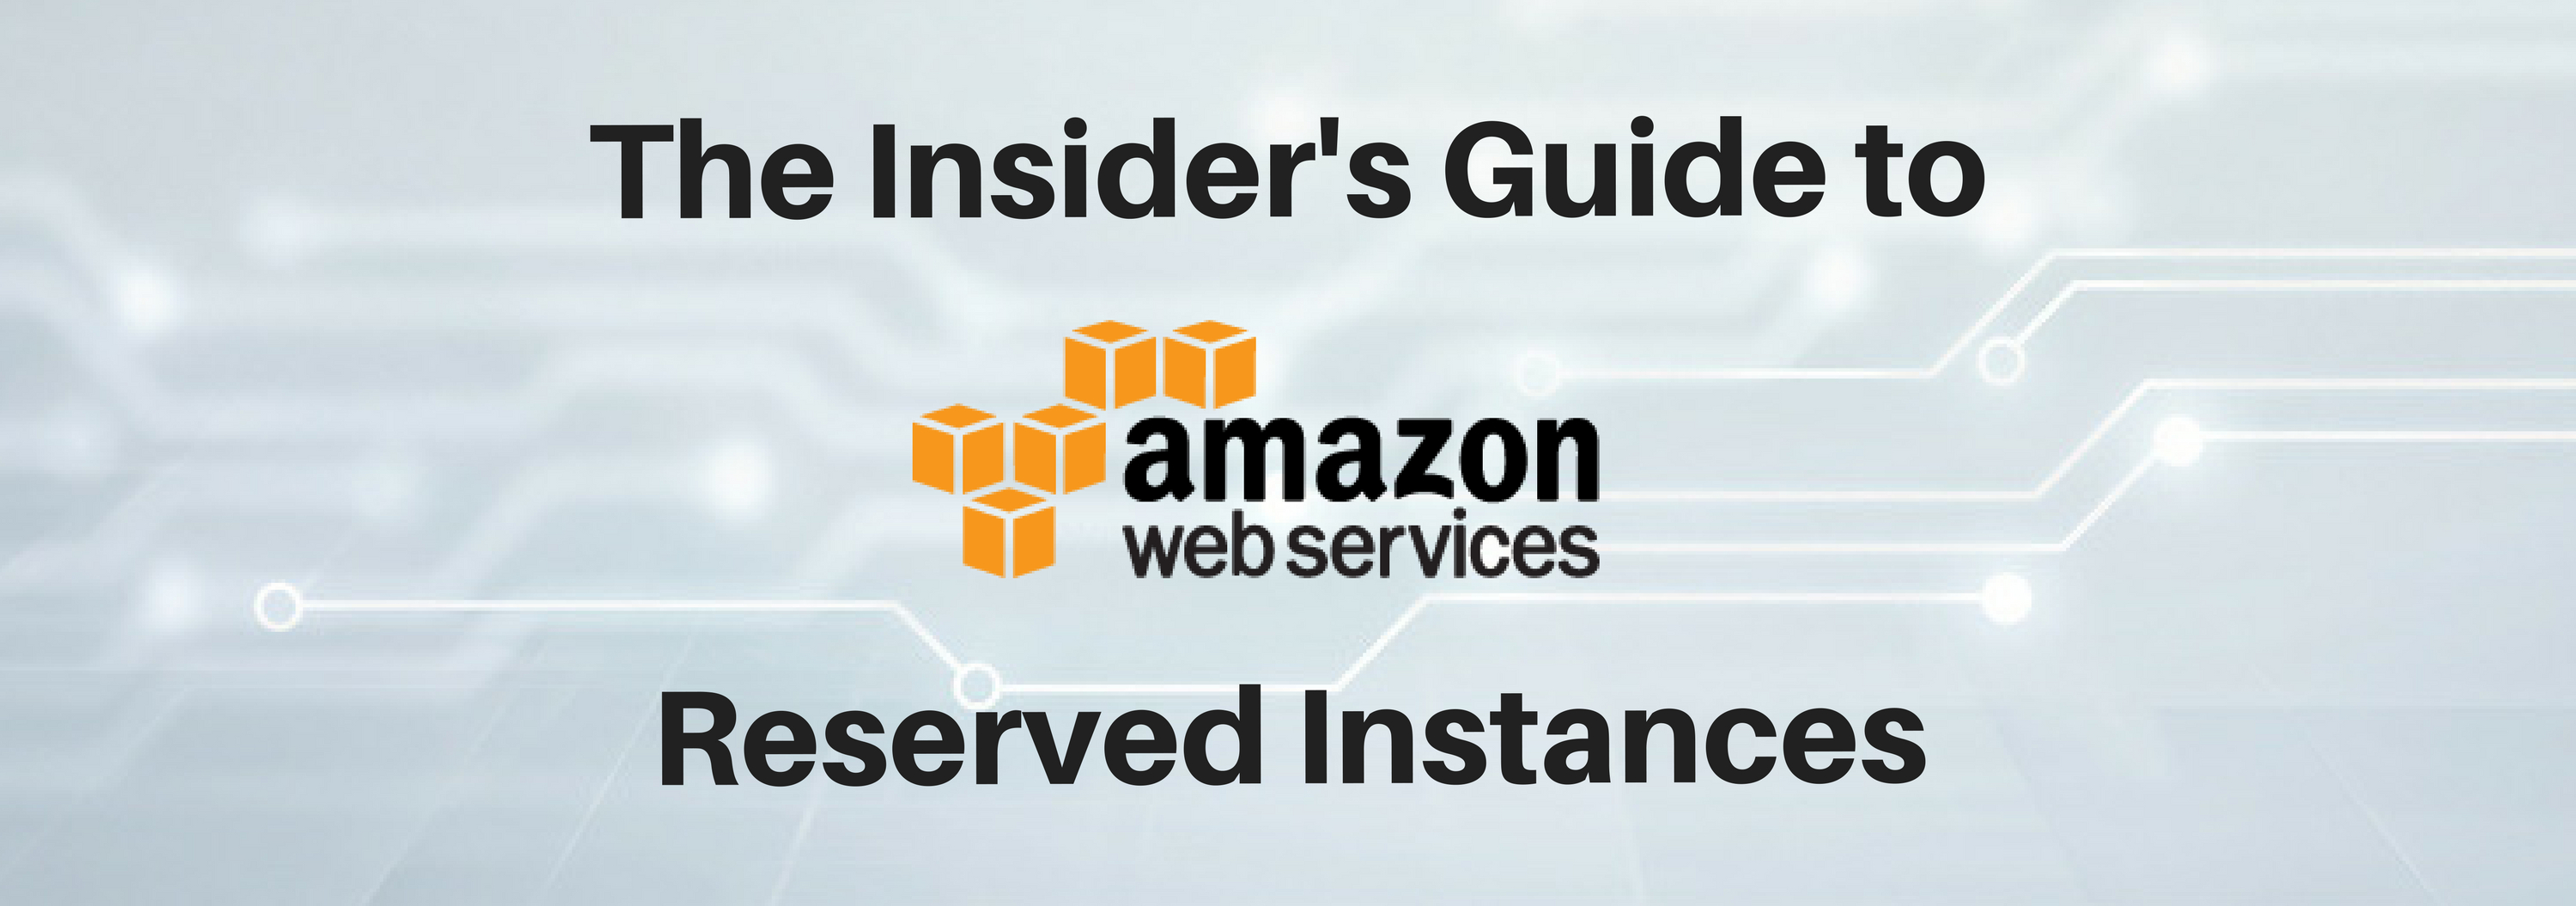 Aws Cost Calculator Spreadsheet Regarding The Insider's Guide To Aws Reserved Instances  Mission